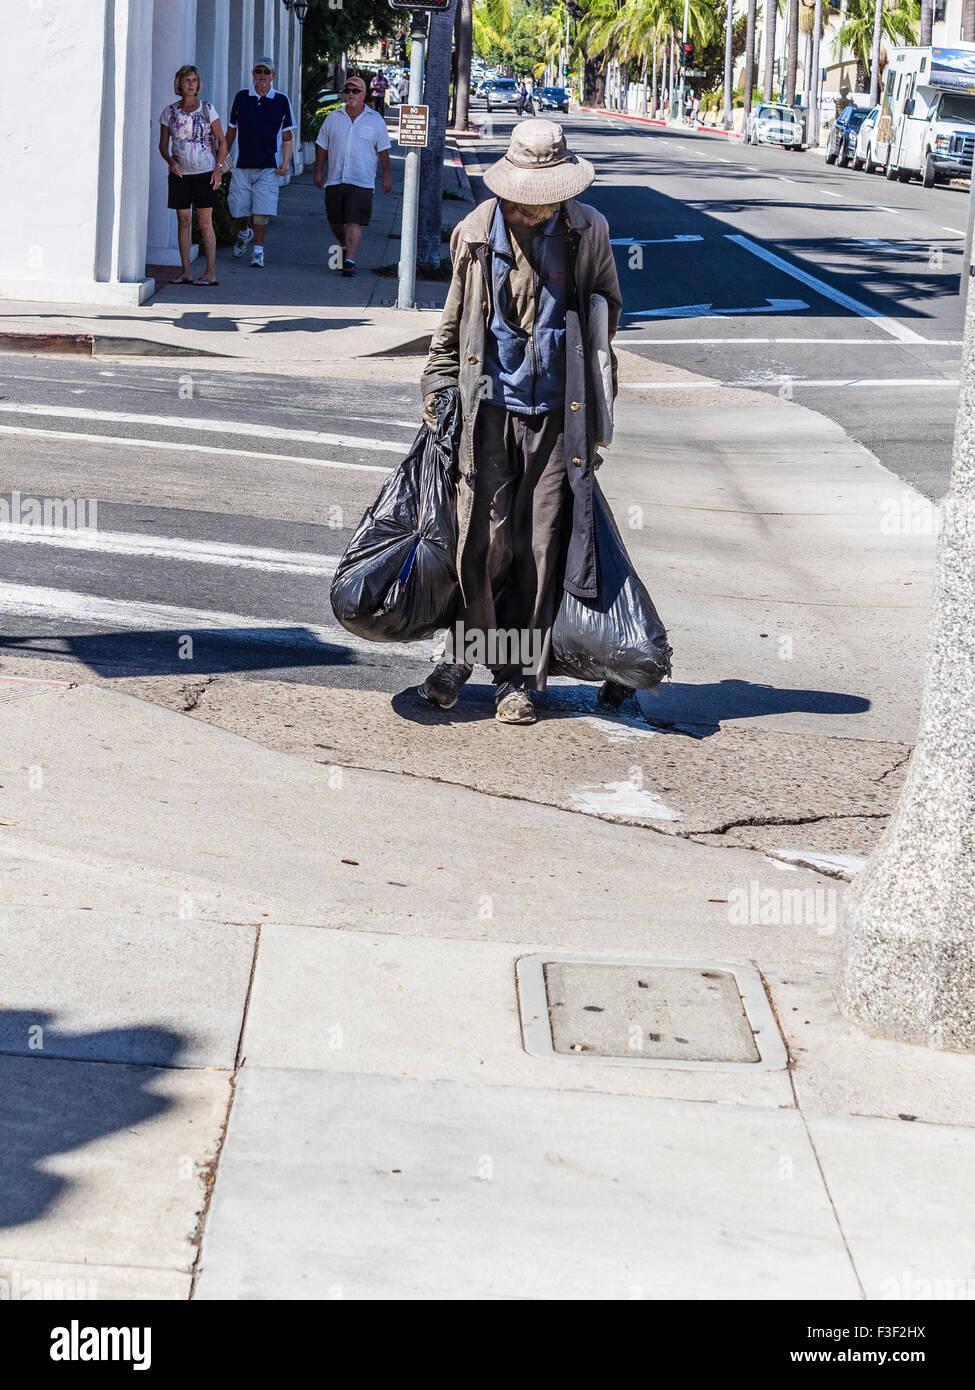 An older adult homeless man wearing a long coat and a hat on a hot day and carrying two large black plastic garbage - Stock Image